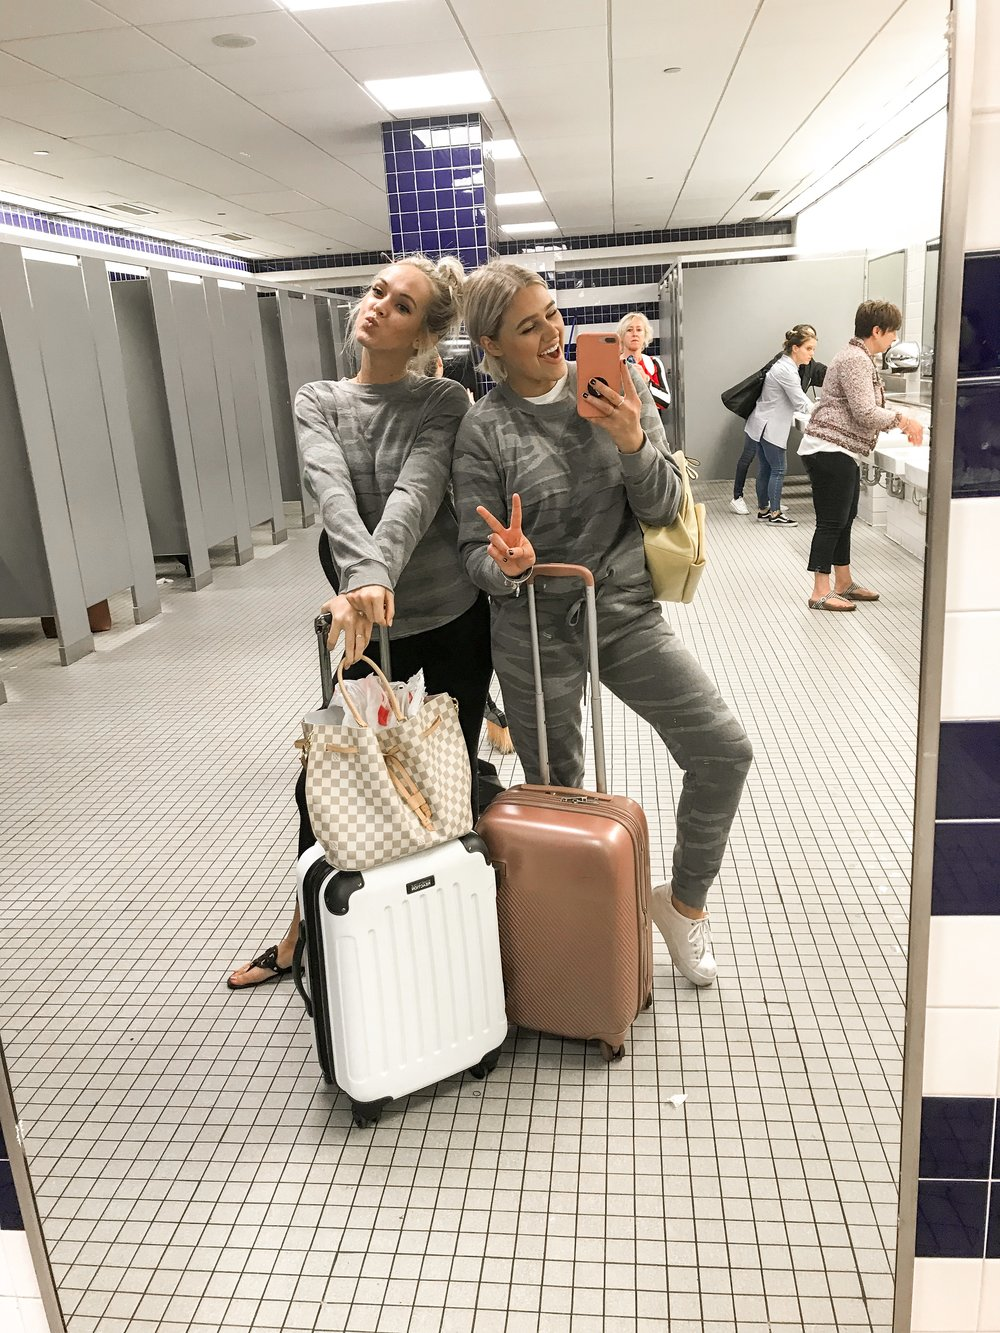 Bre Sheppard - My First NYFW - Airport Swag.JPG